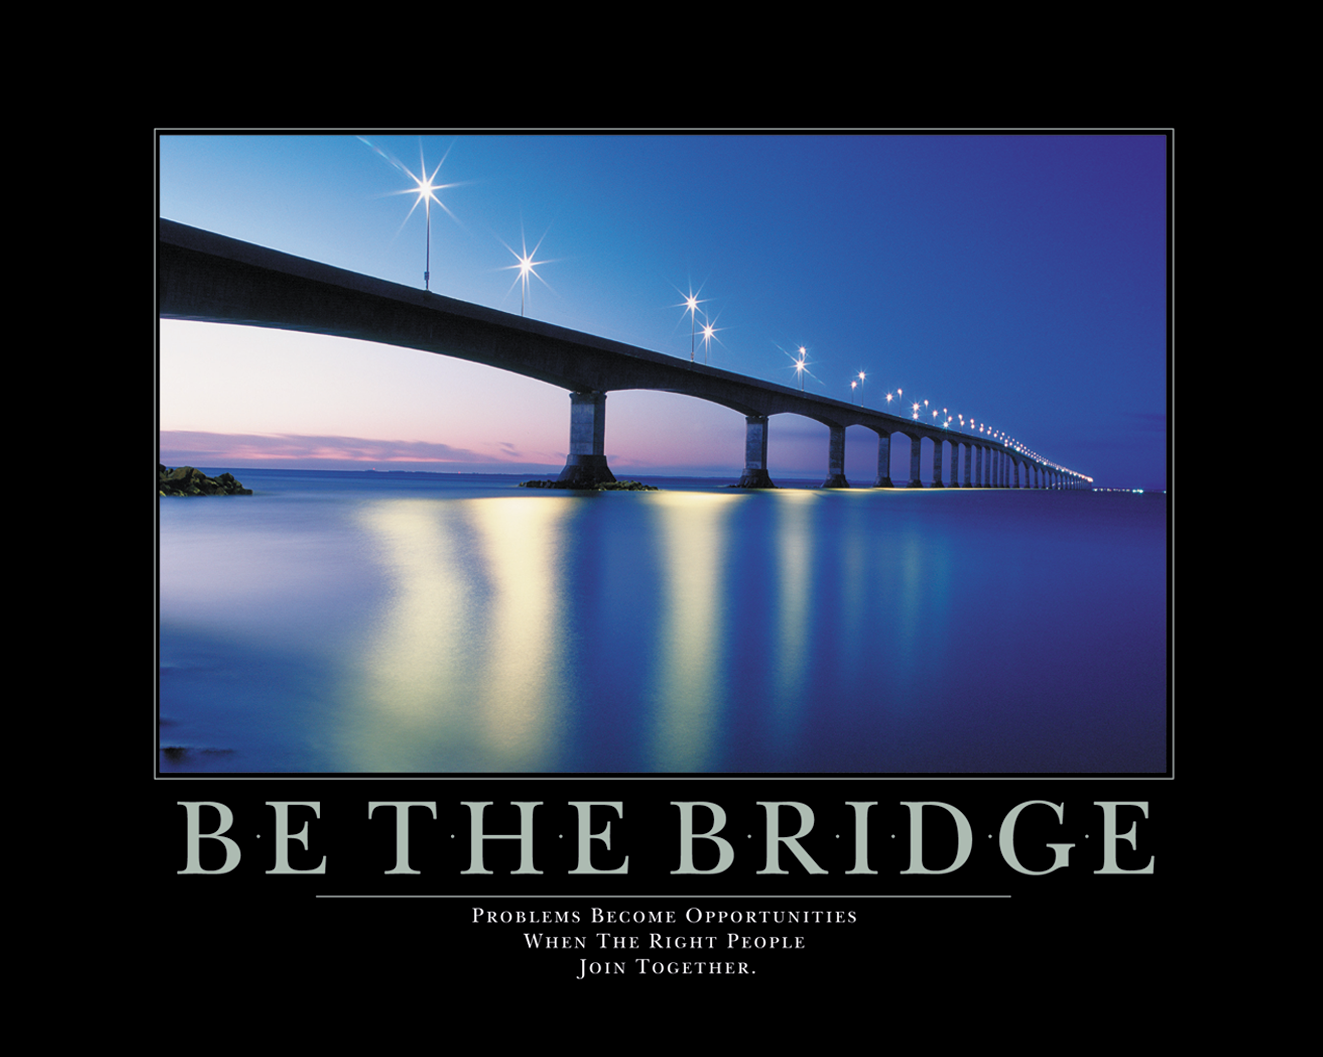 Motivational Posters For Office How They Became So Popular